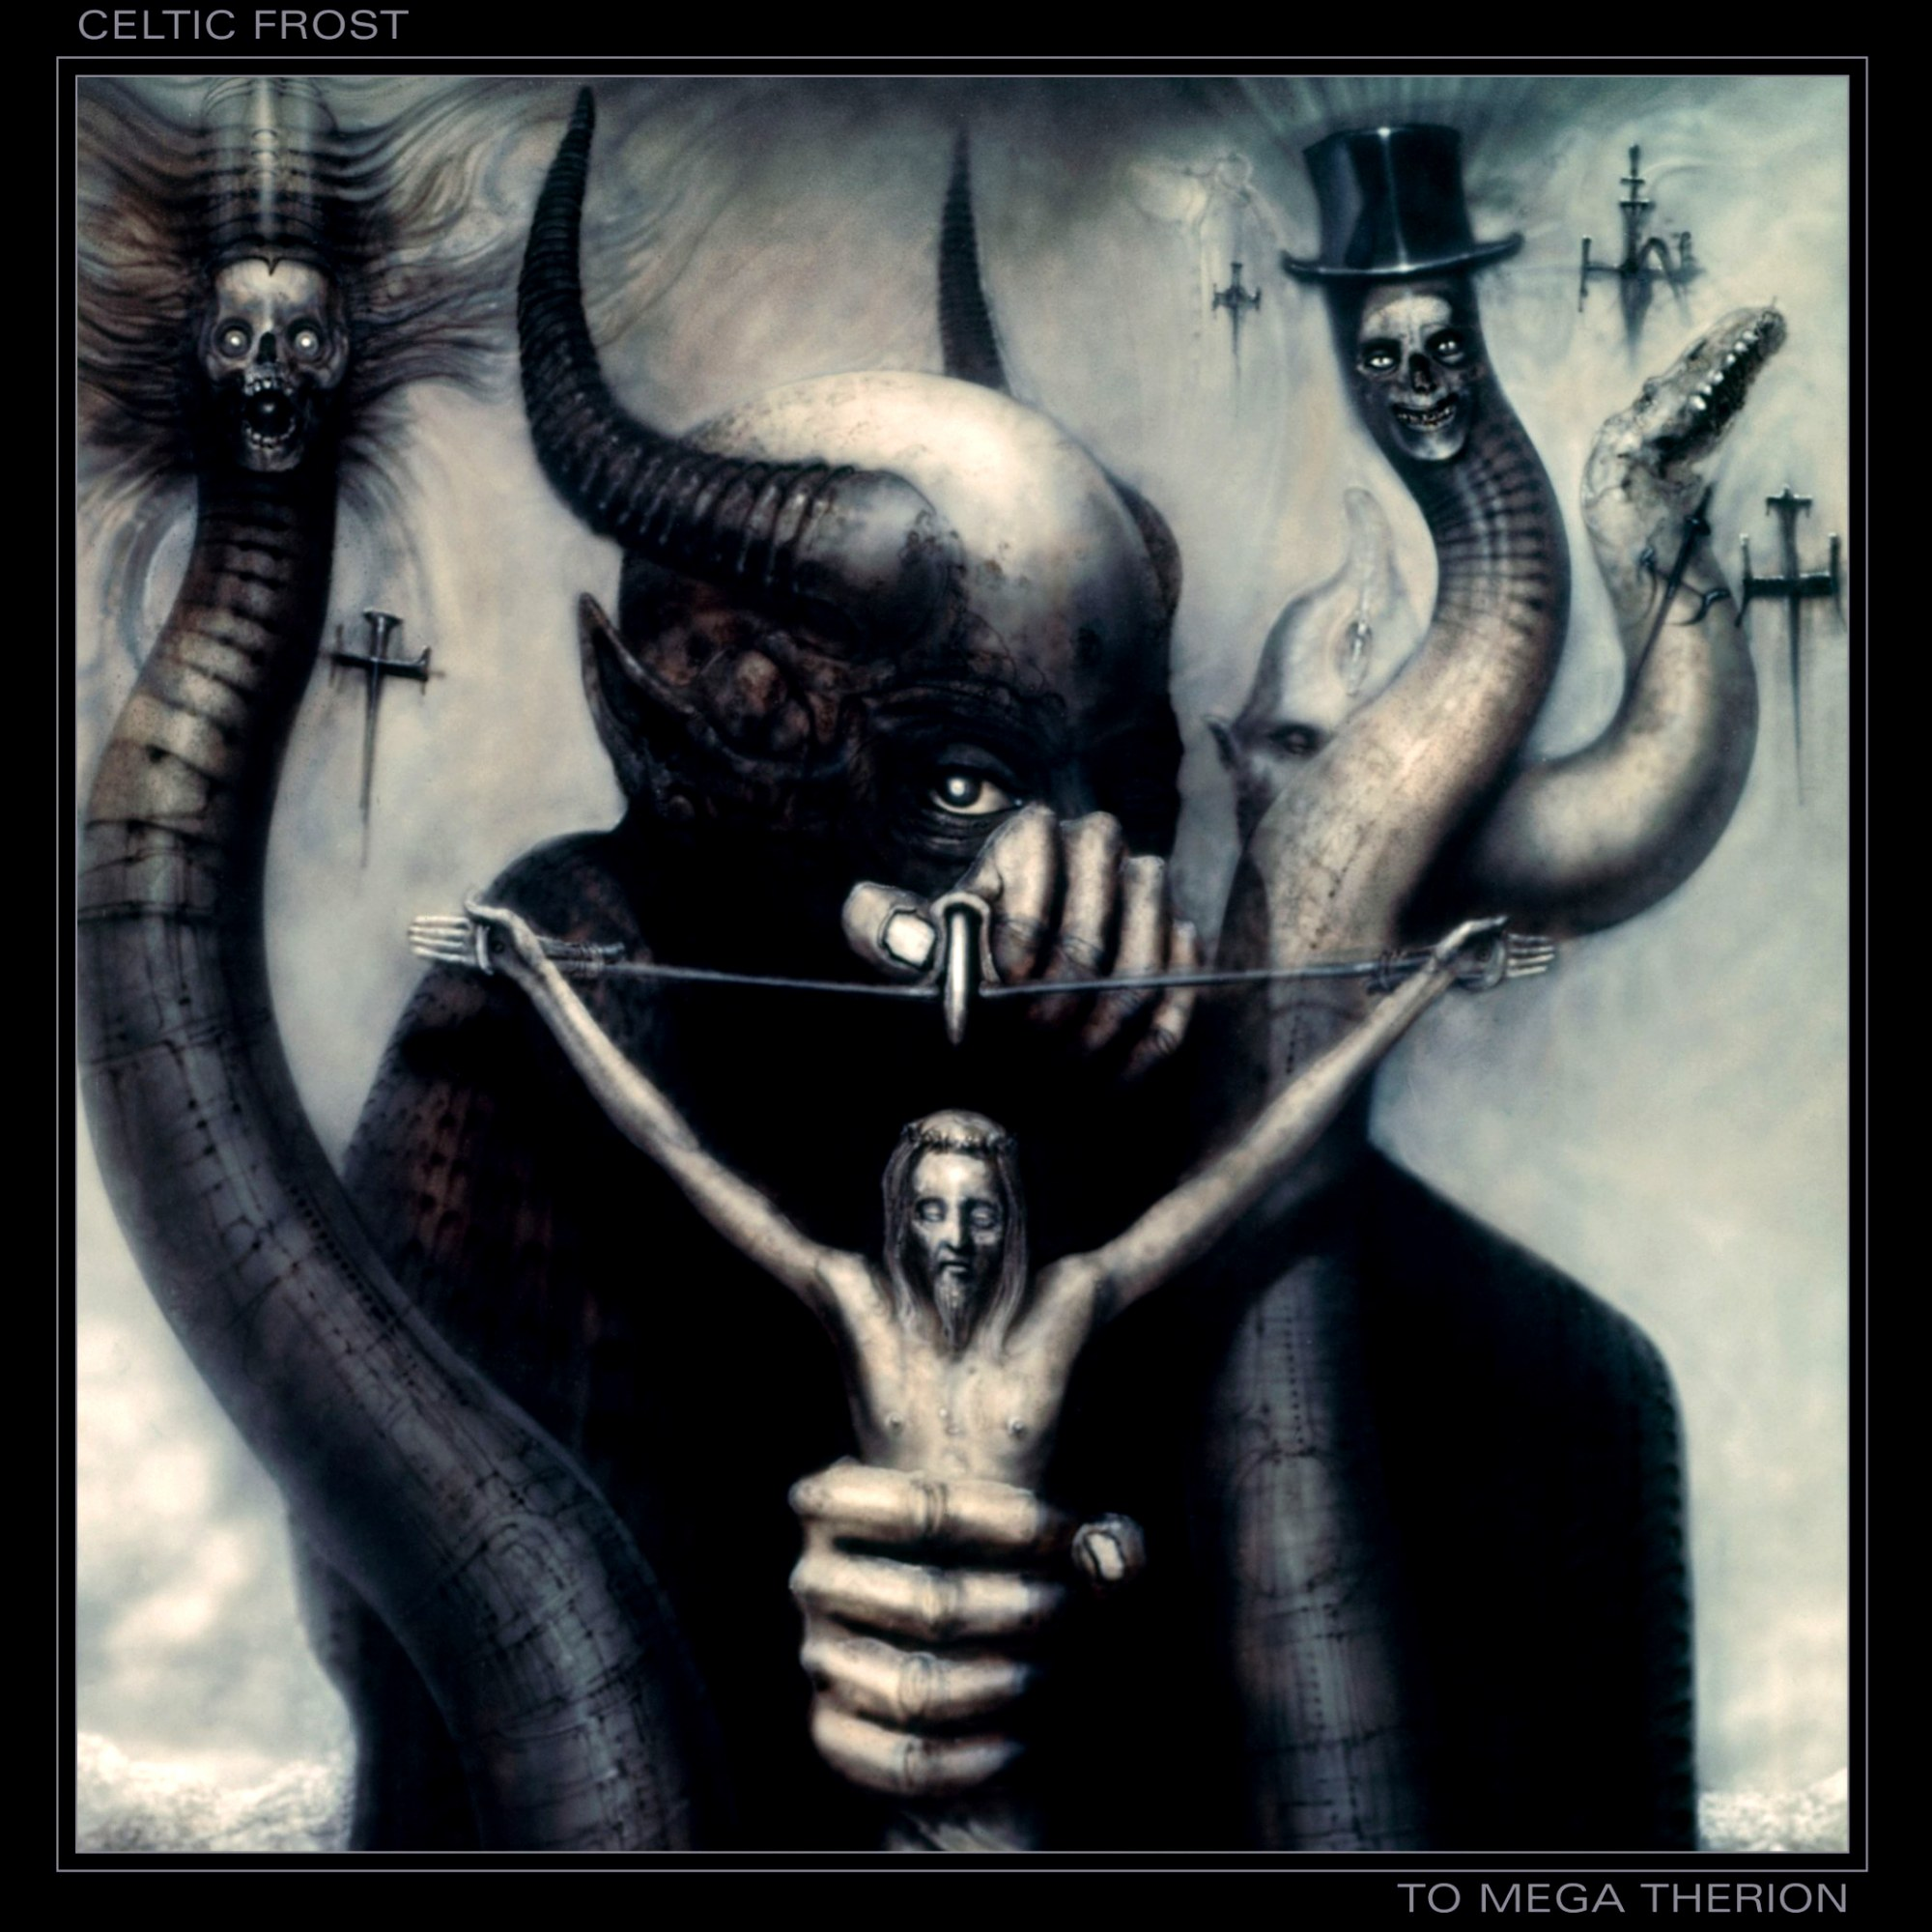 Review for Celtic Frost - To Mega Therion